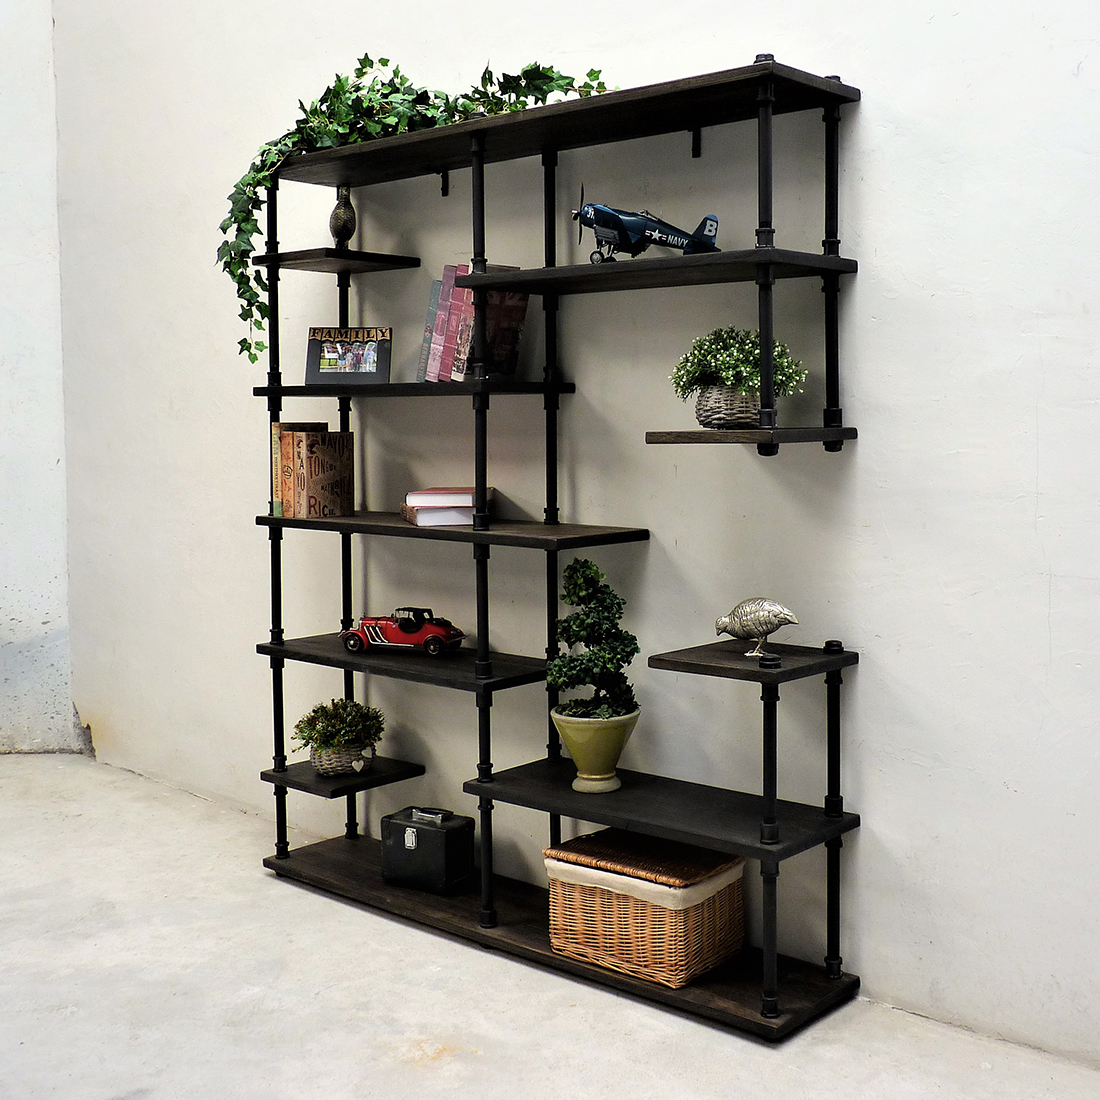 Nashville Industrial Mid Century Etagere Bookcase In Black Steel Combo With Dark Brown Stained Wood By Furniture Pipeline